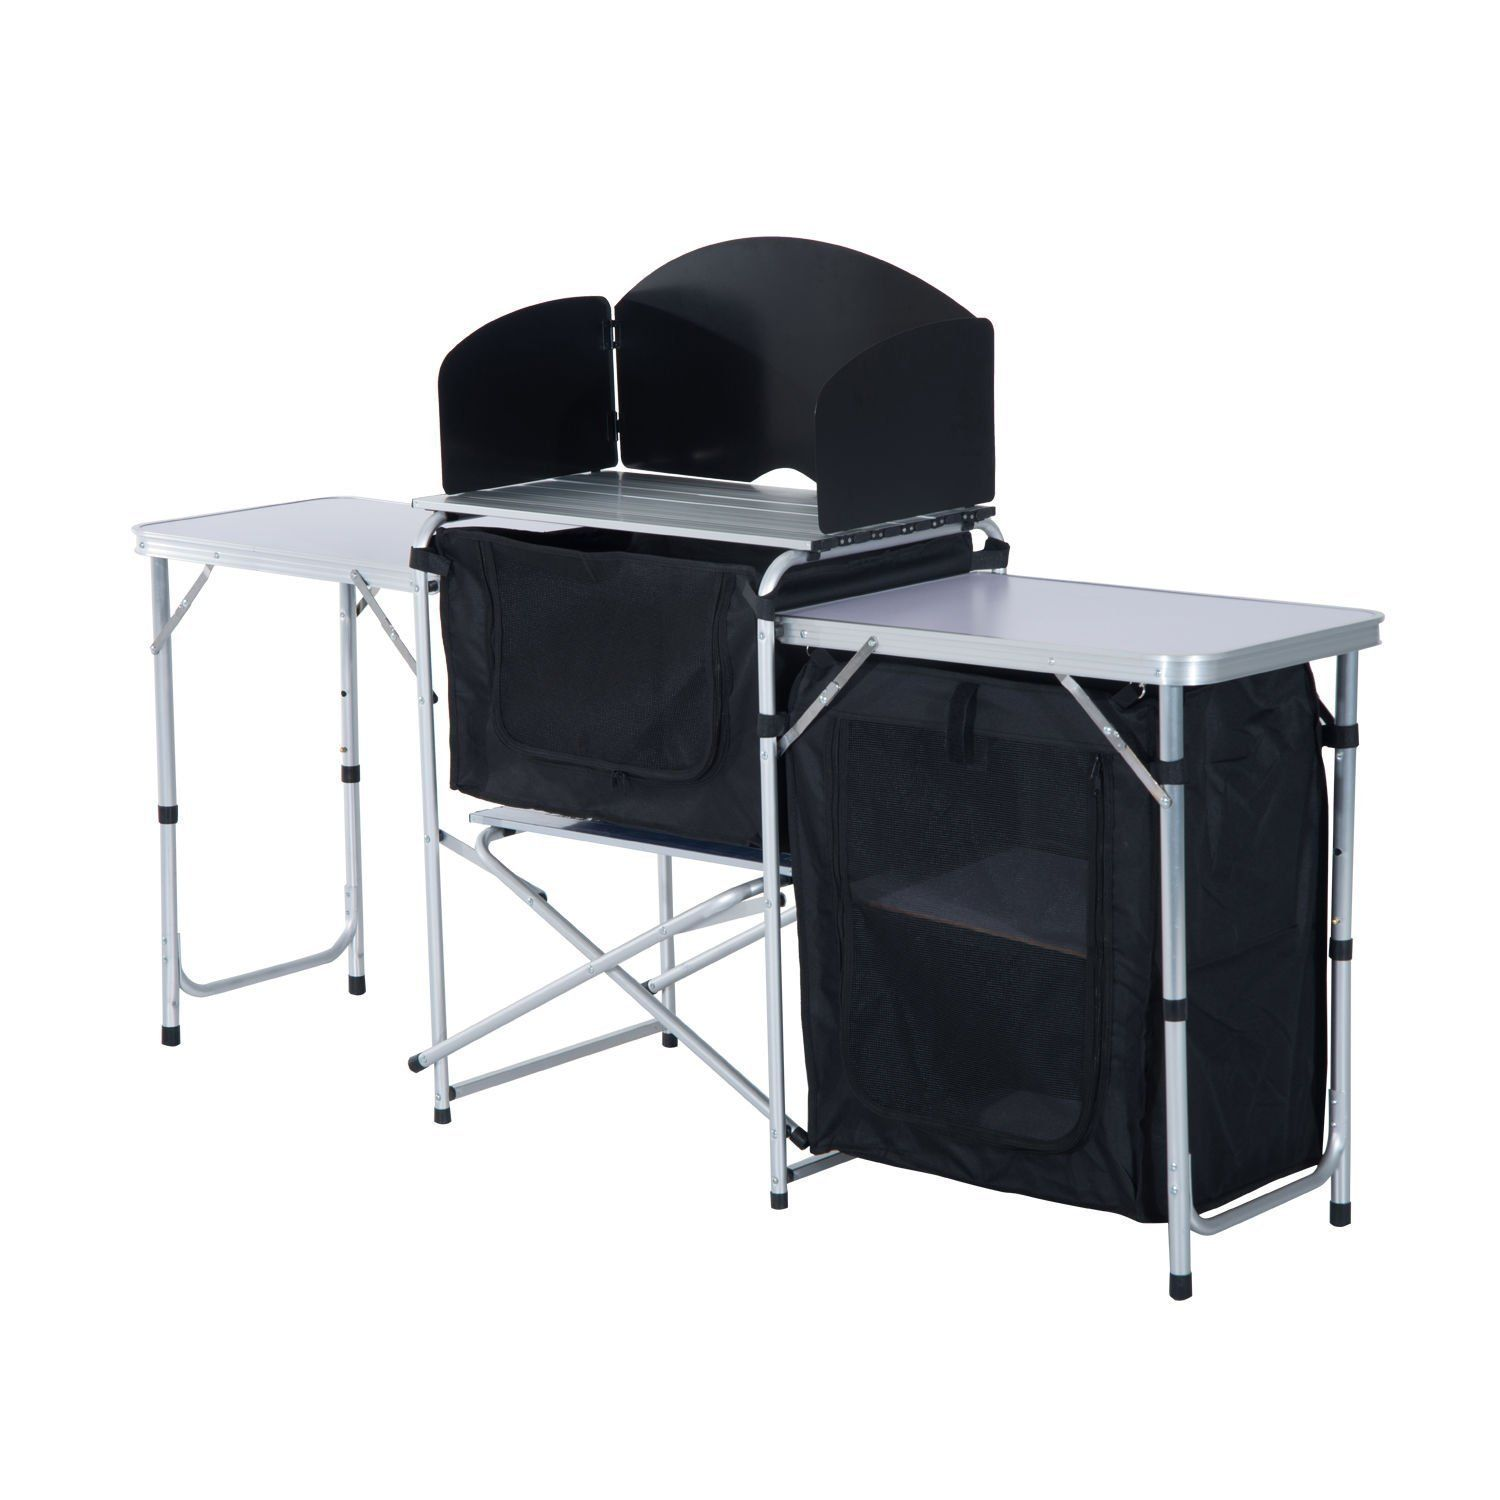 Amazon.com : Outsunny 4.5\' Deluxe Portable Fold-Up Camp Kitchen ...